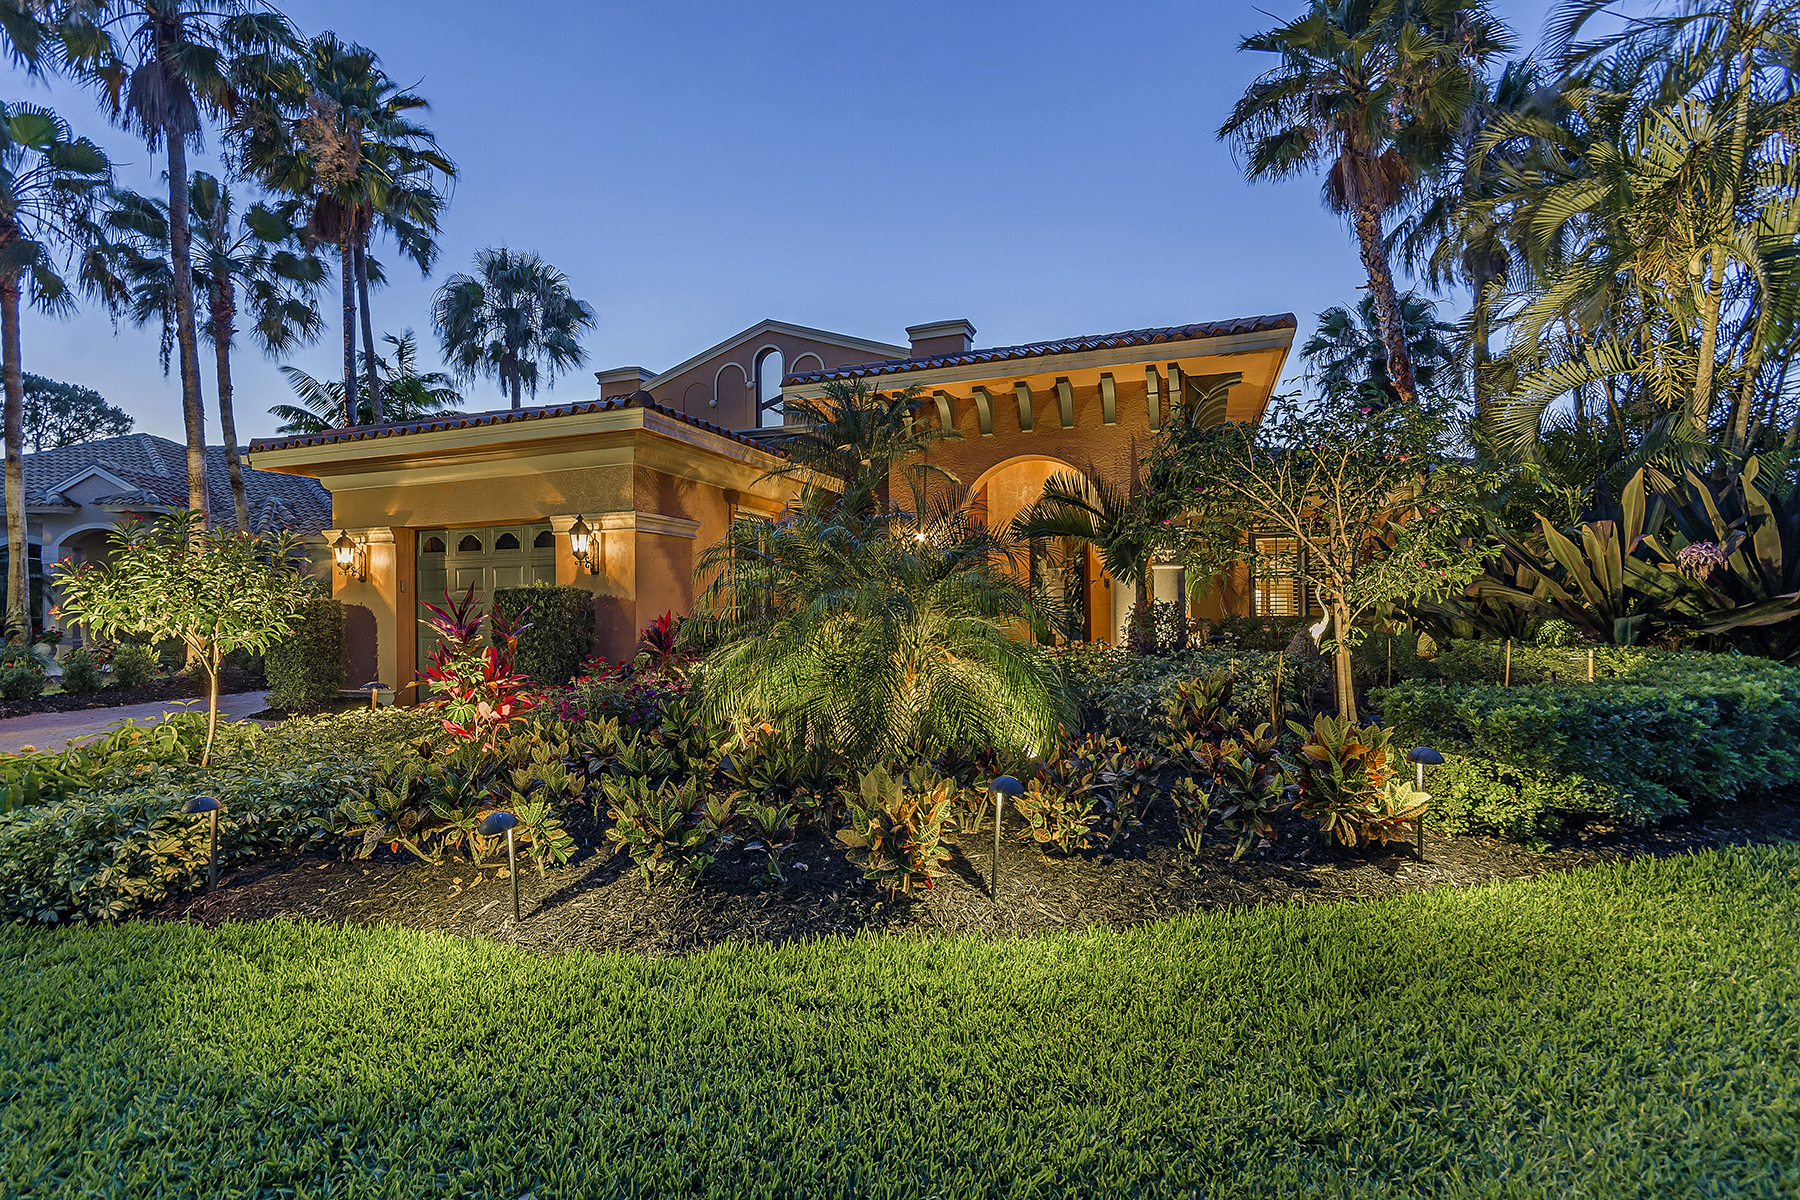 Single Family Home for Sale at KENSINGTON GARDENS 2929 Gardens Blvd, Naples, Florida 34105 United States